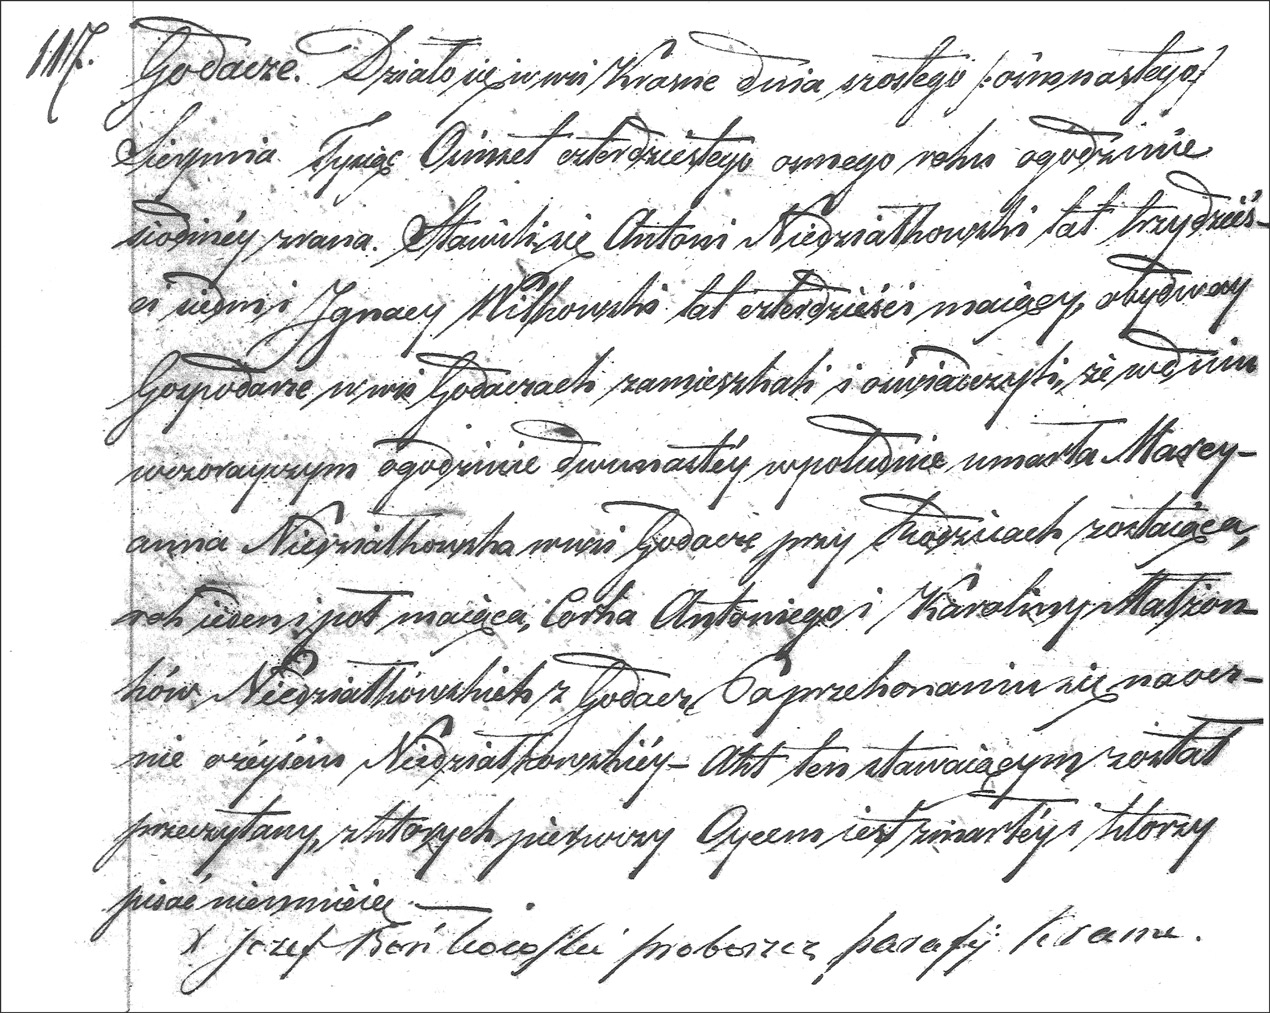 The Death and Burial Record of Marianna Niedzialkowska - 1848